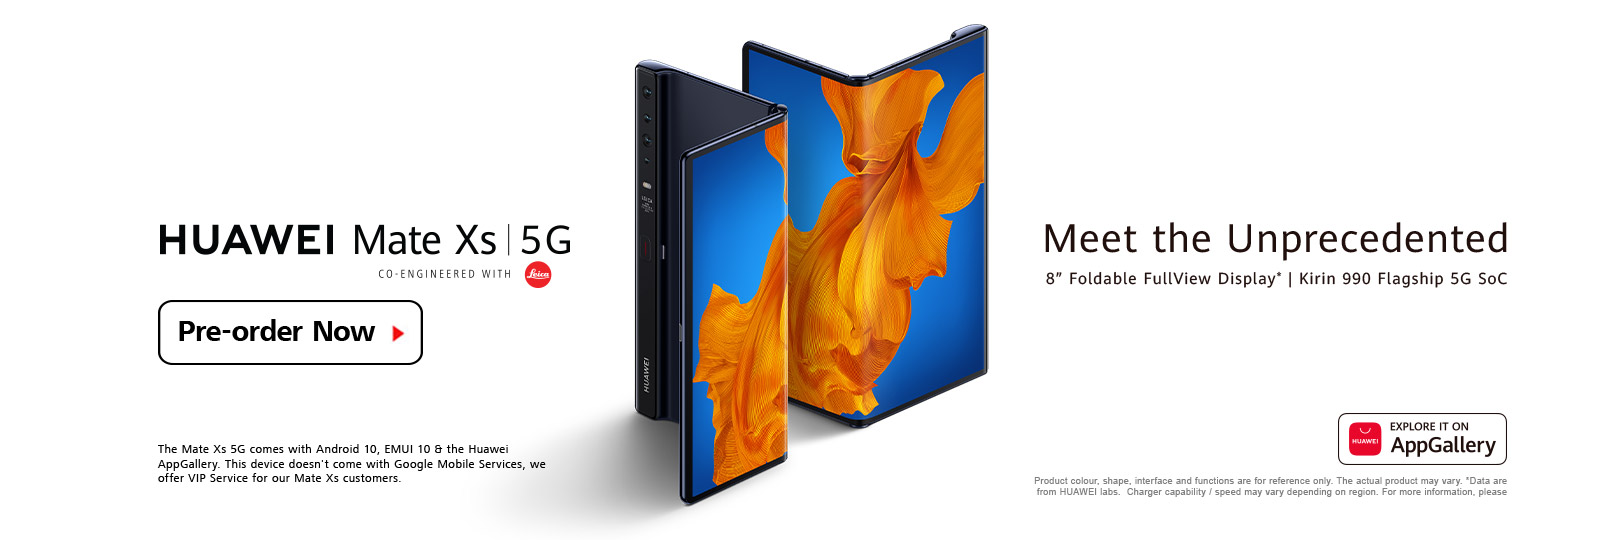 Huawei Mate Xs - Pre Order Now